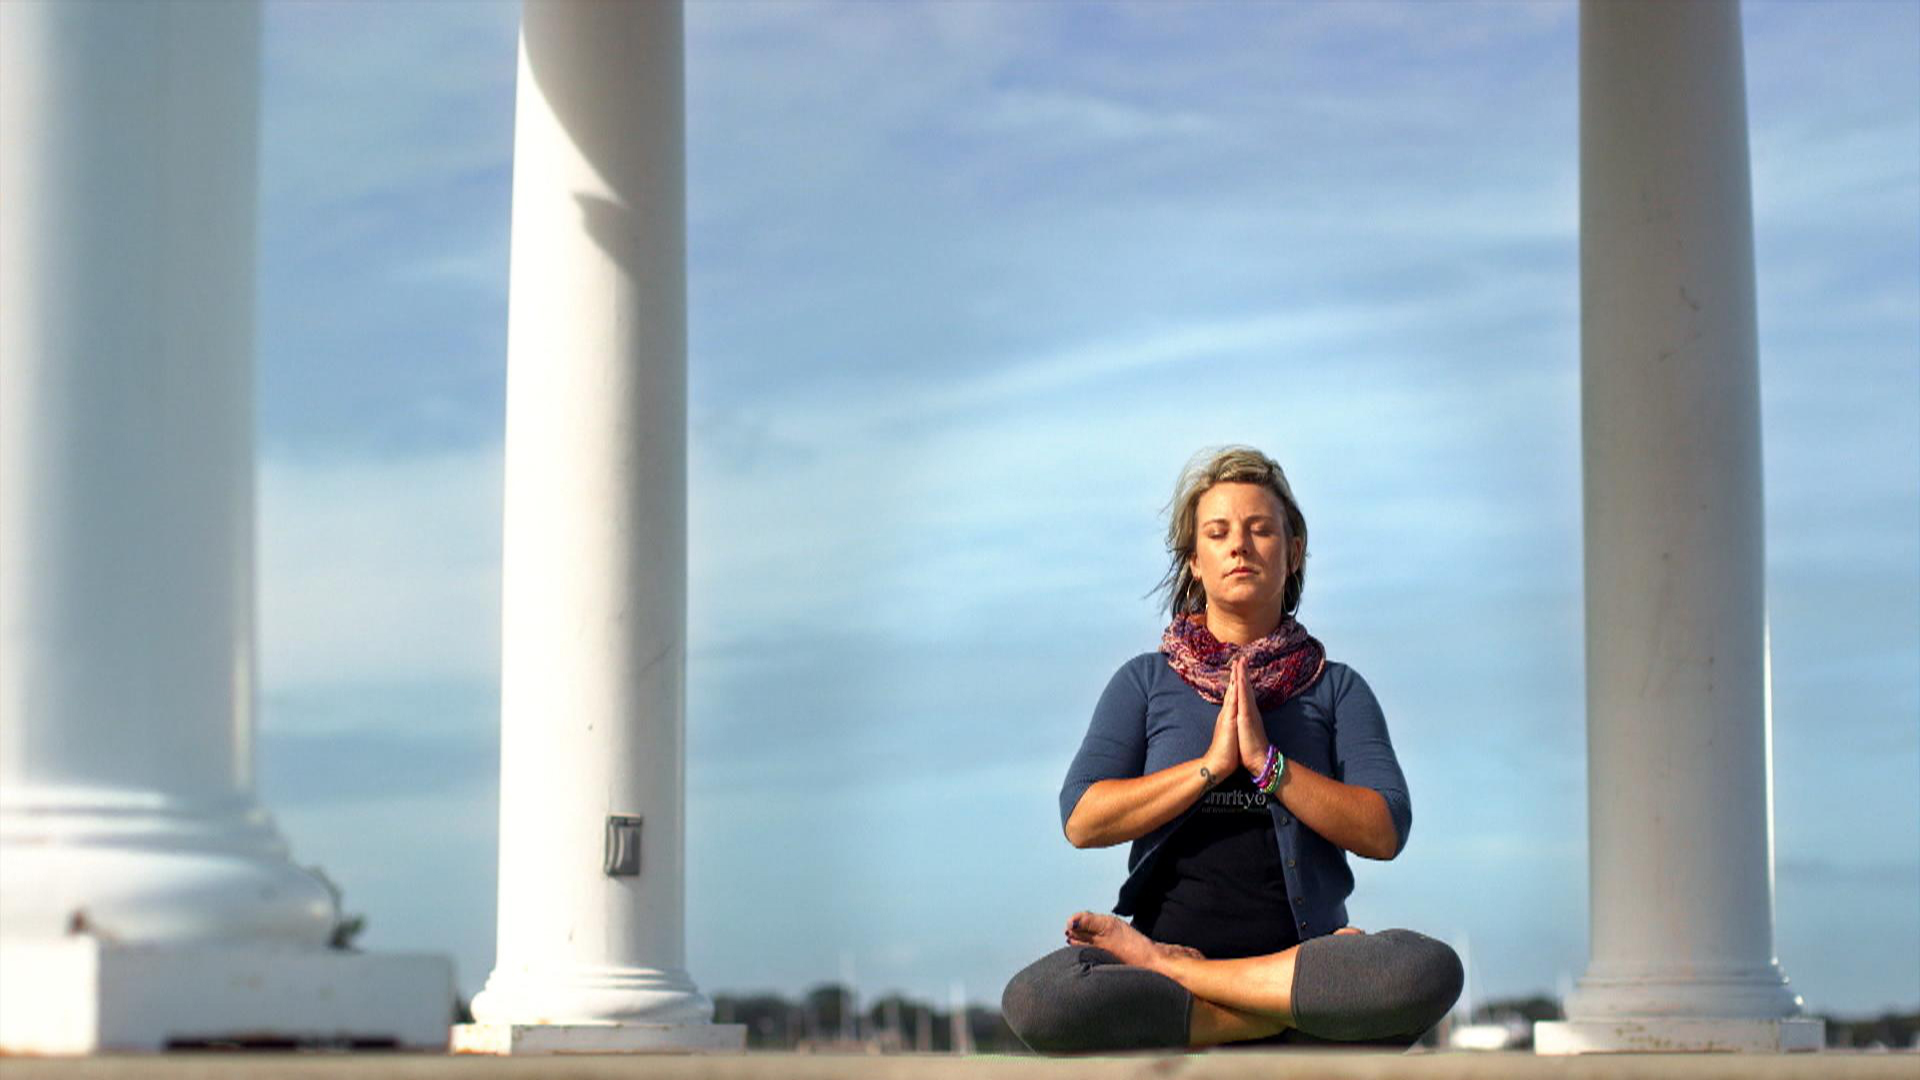 After military, using yoga to relieve stress